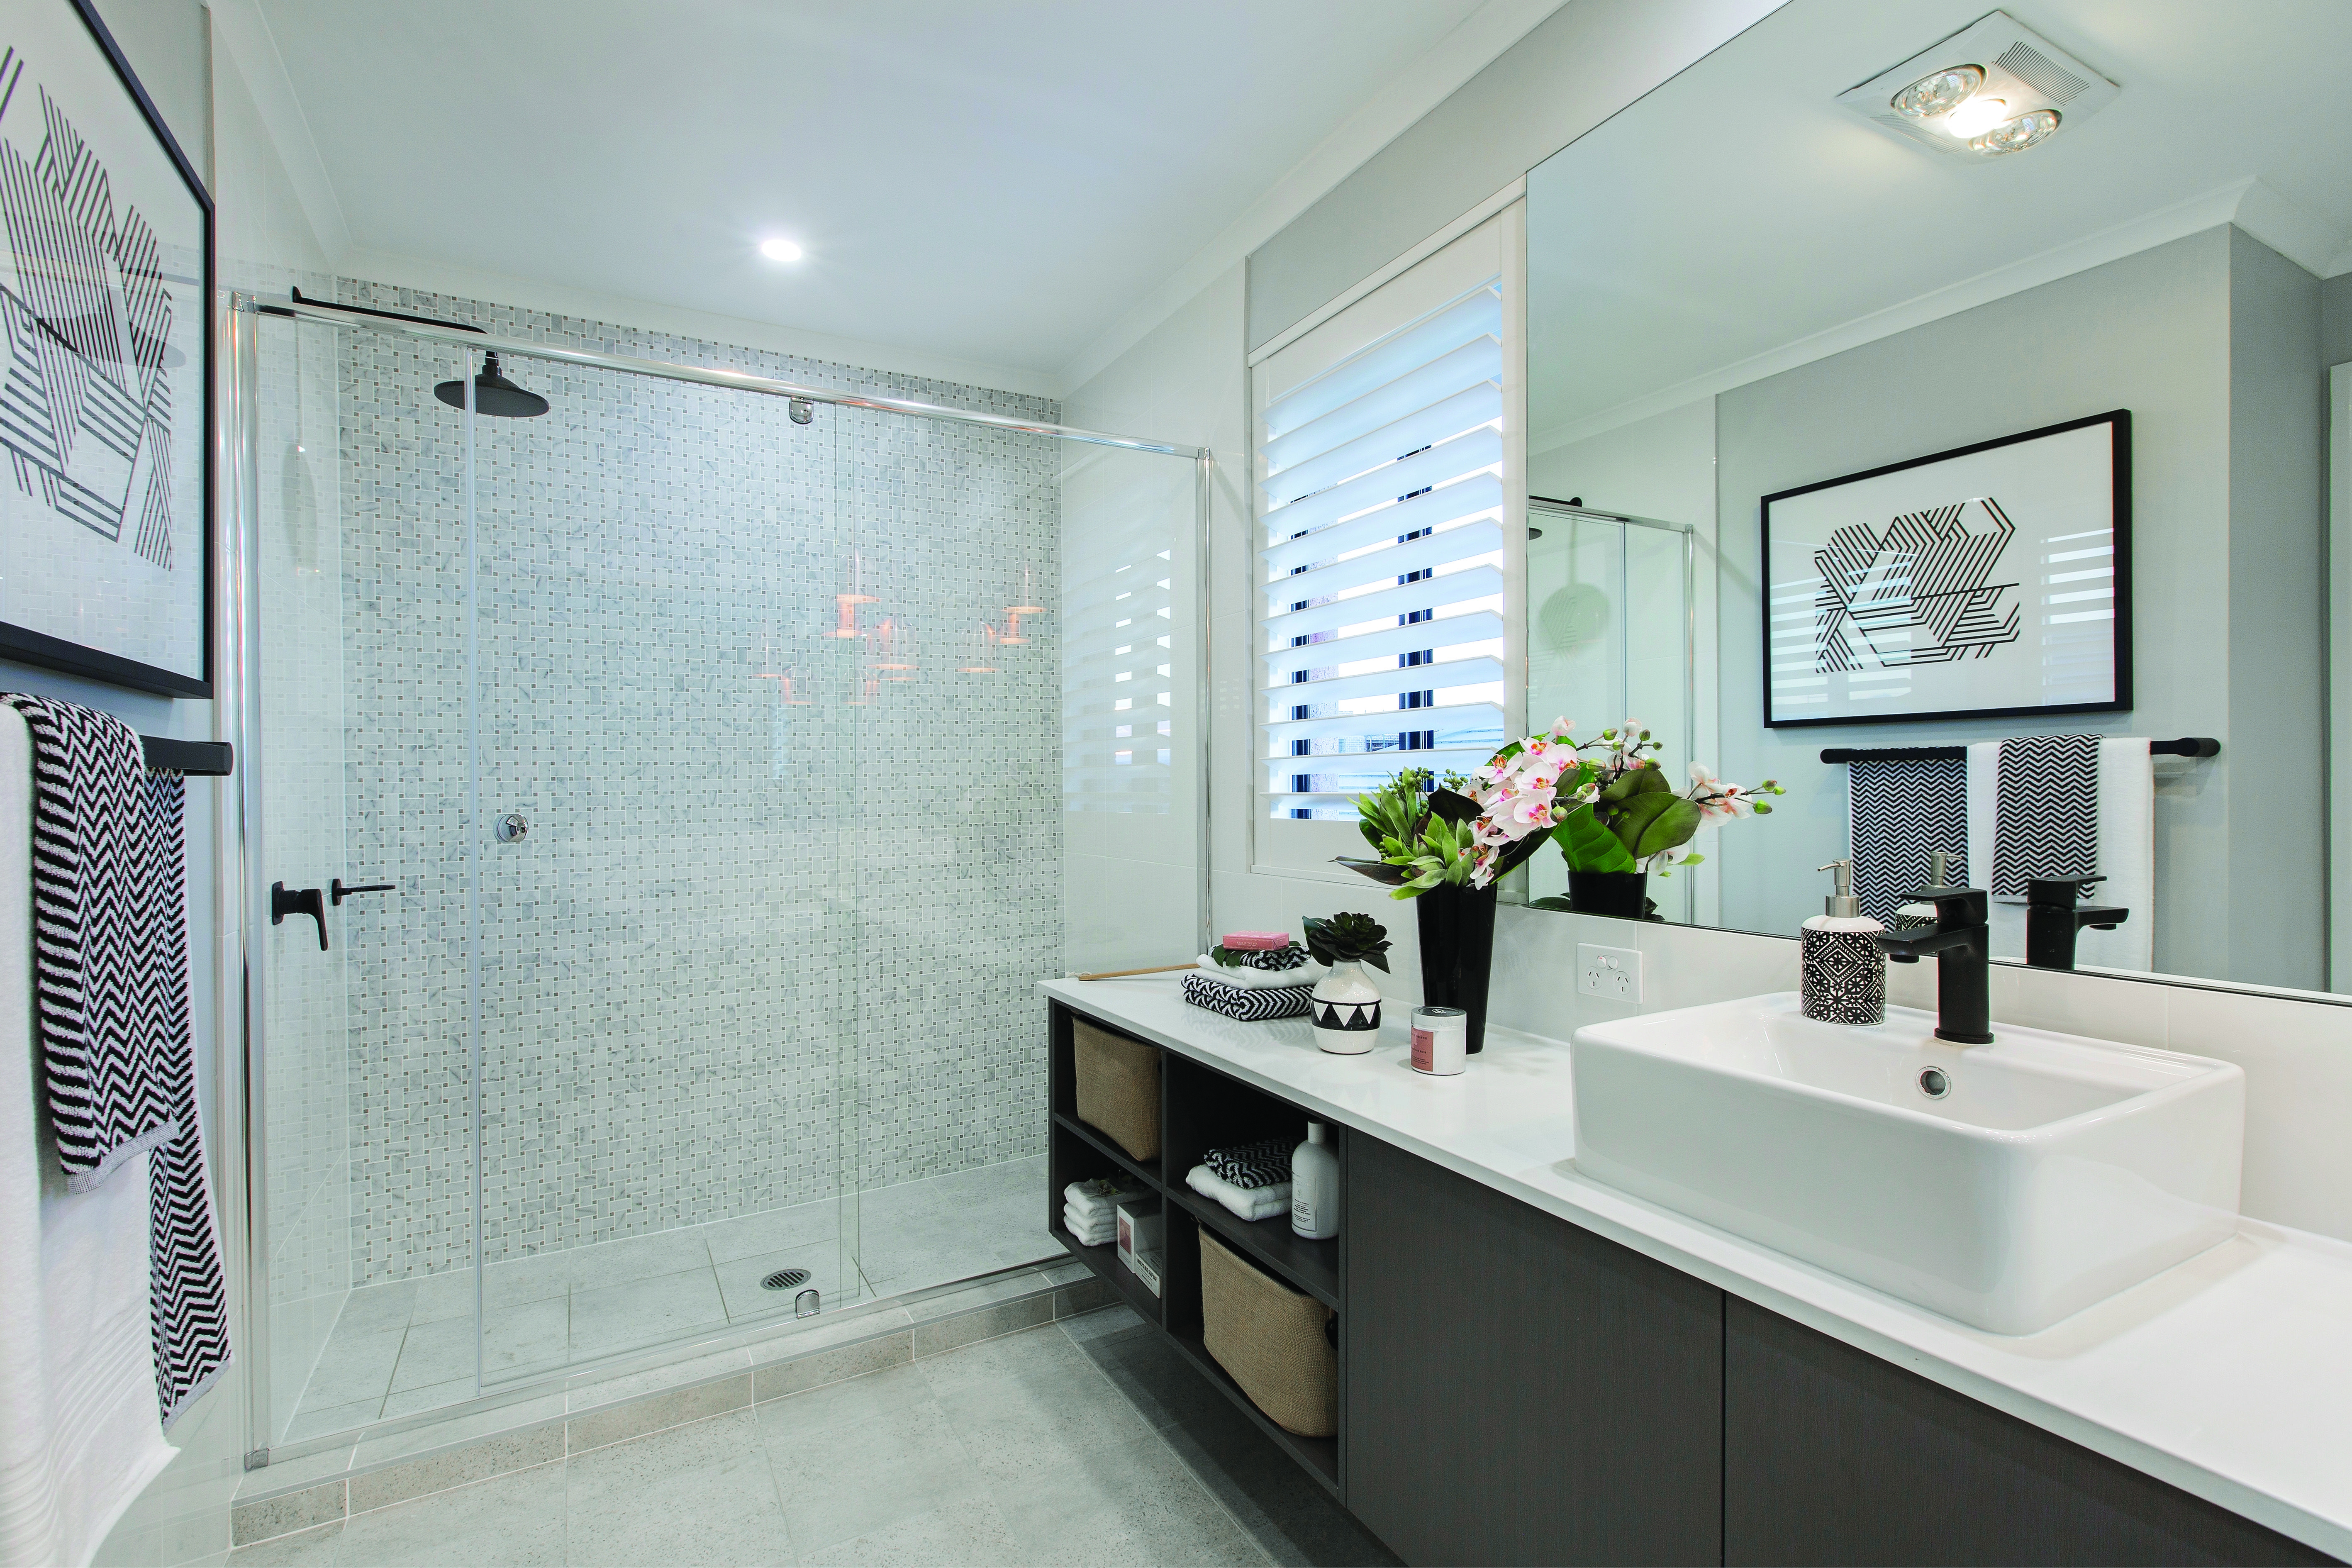 The Bristol Display By Eden Brae Homes NSW Http://www.edenbraehomes.